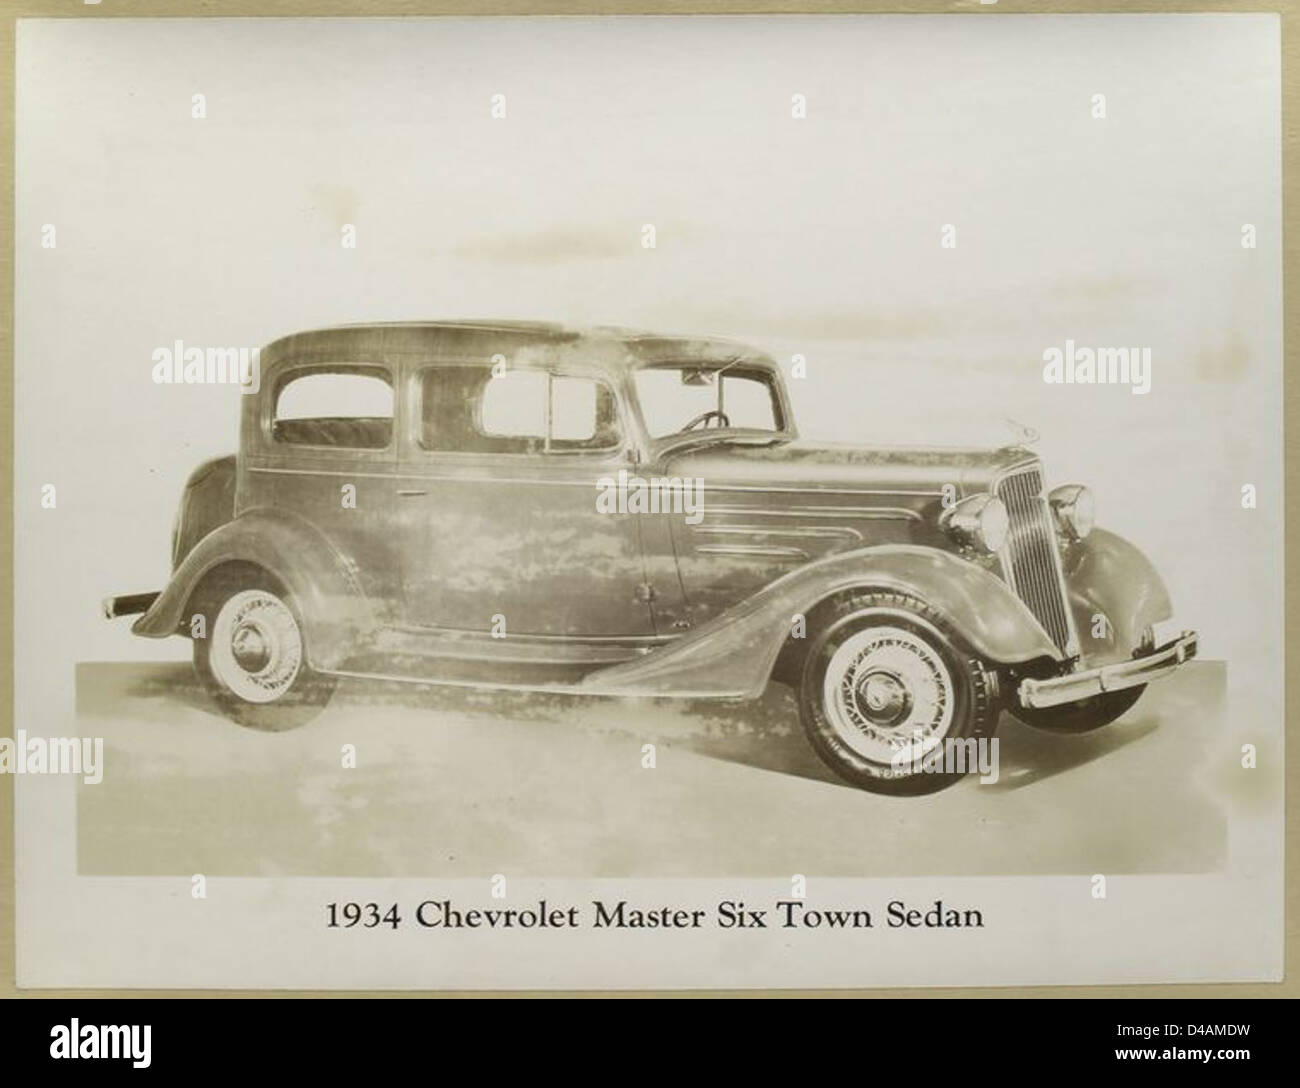 1934 Chevrolet Master Six Town Sedan Stock Photo: 54325317 - Alamy